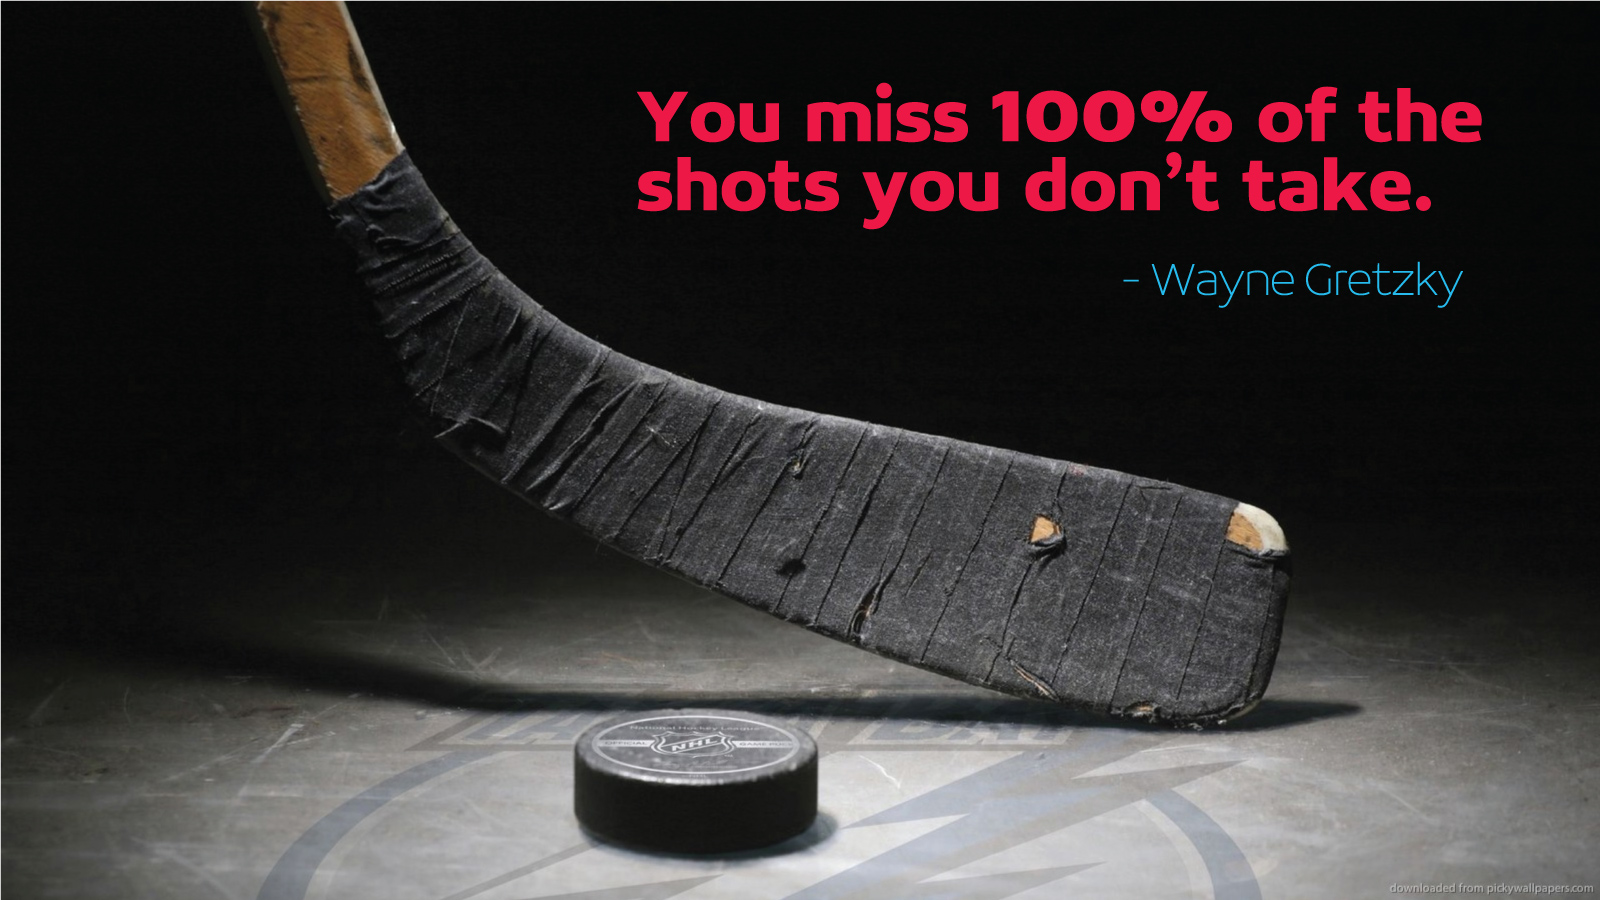 [Image]You miss 100% of the shots you don't Take